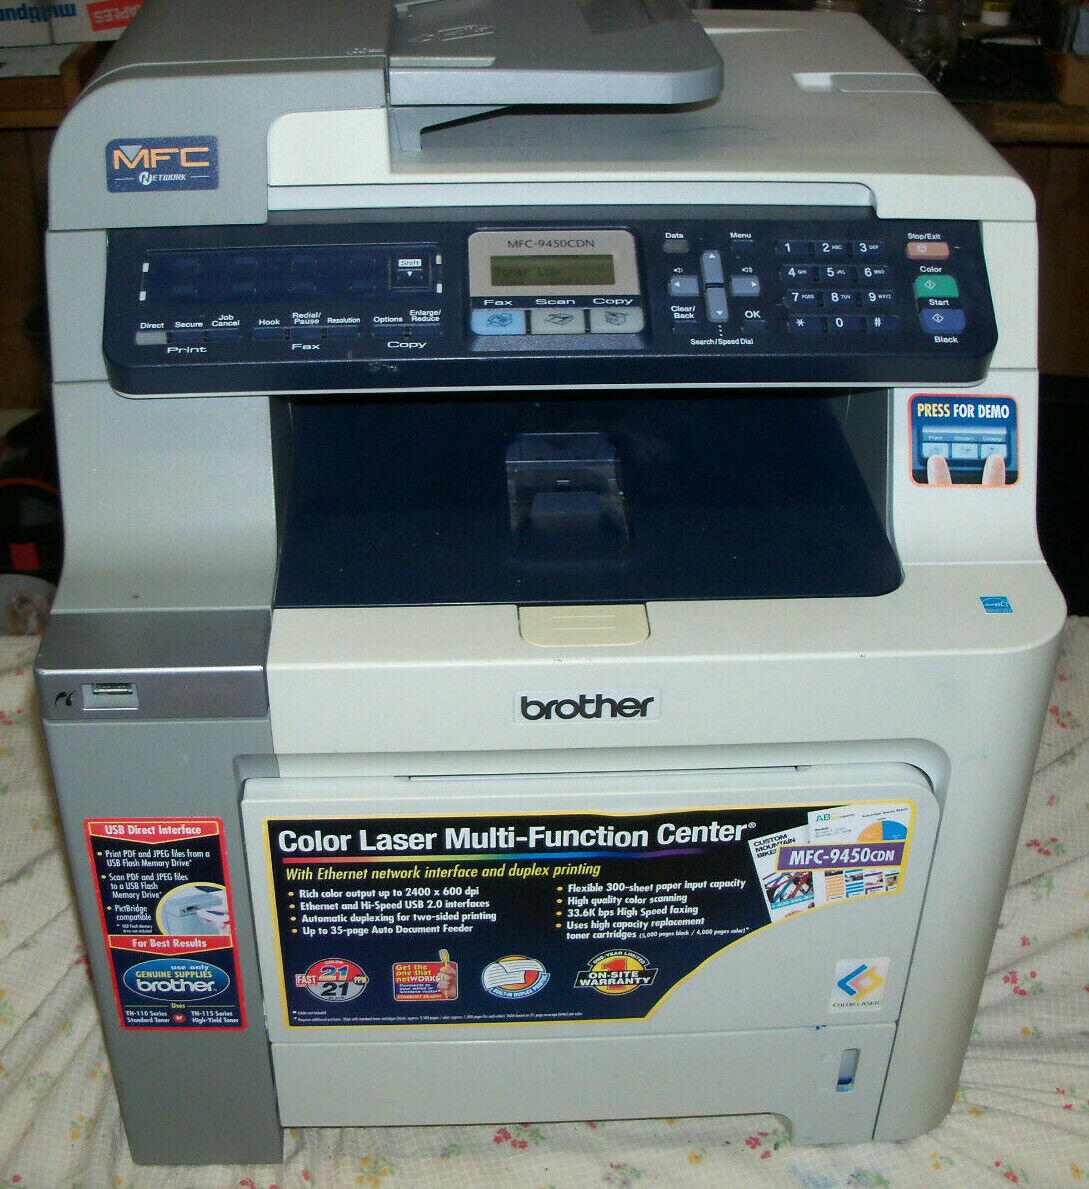 NICE BROTHER MFC-9450CDN ALL-IN-ONE COLOR LASER PRINTER, COP